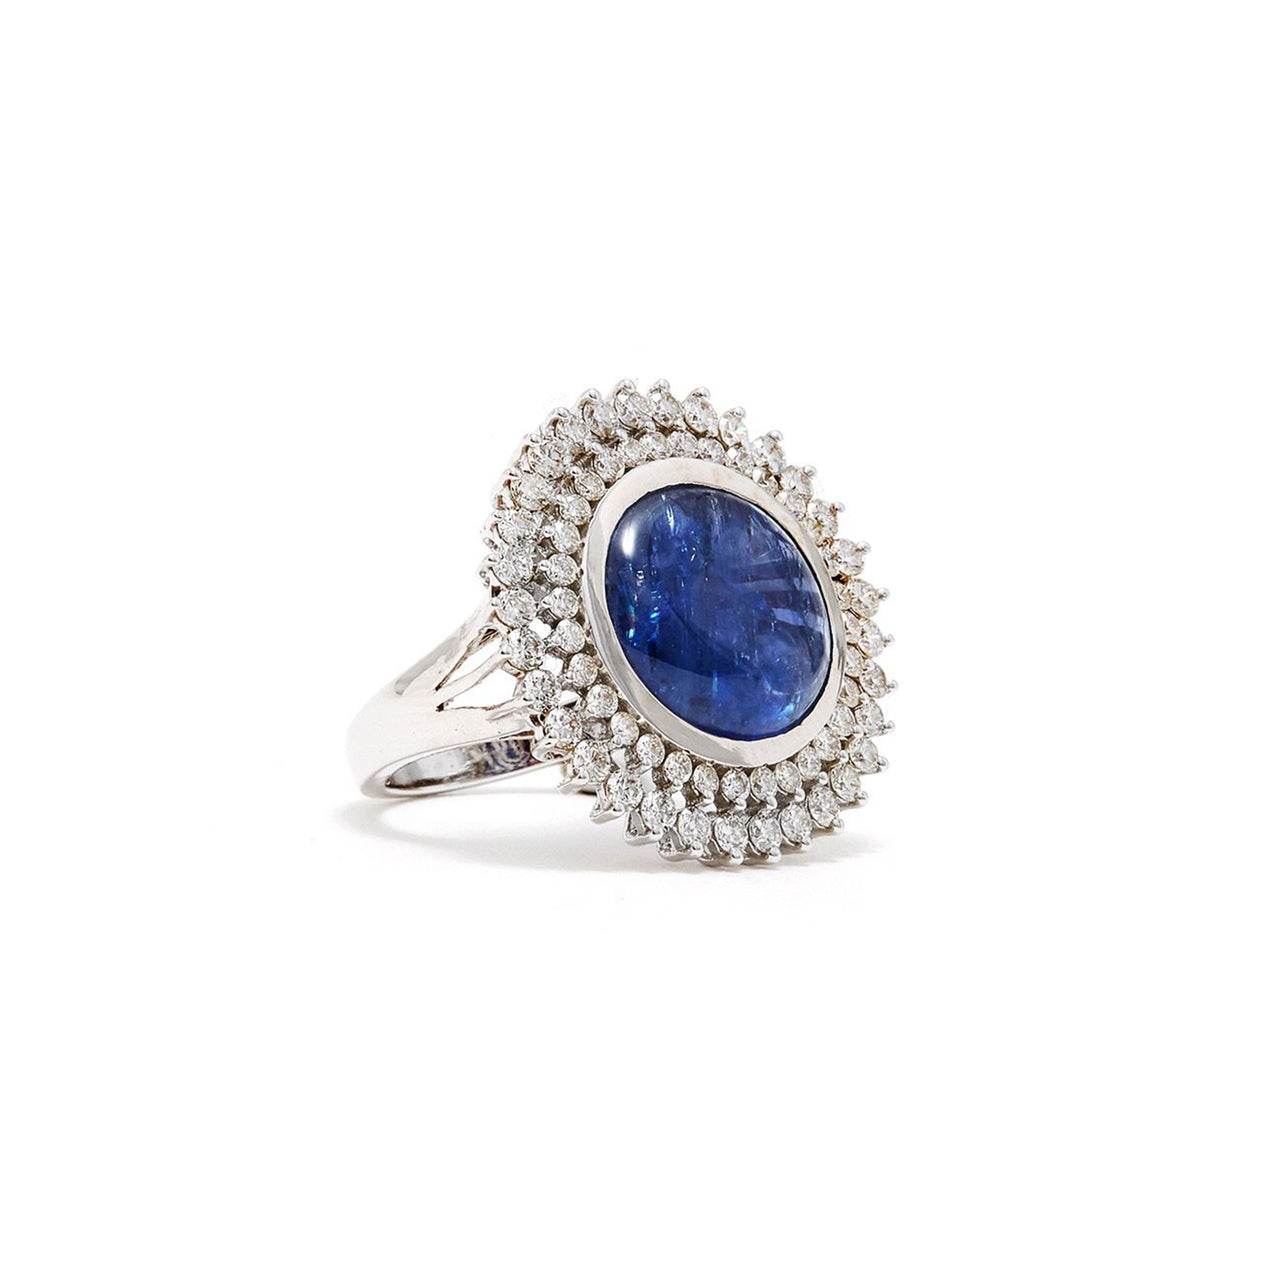 The Star Fall Sapphire & Diamond Dress Ring